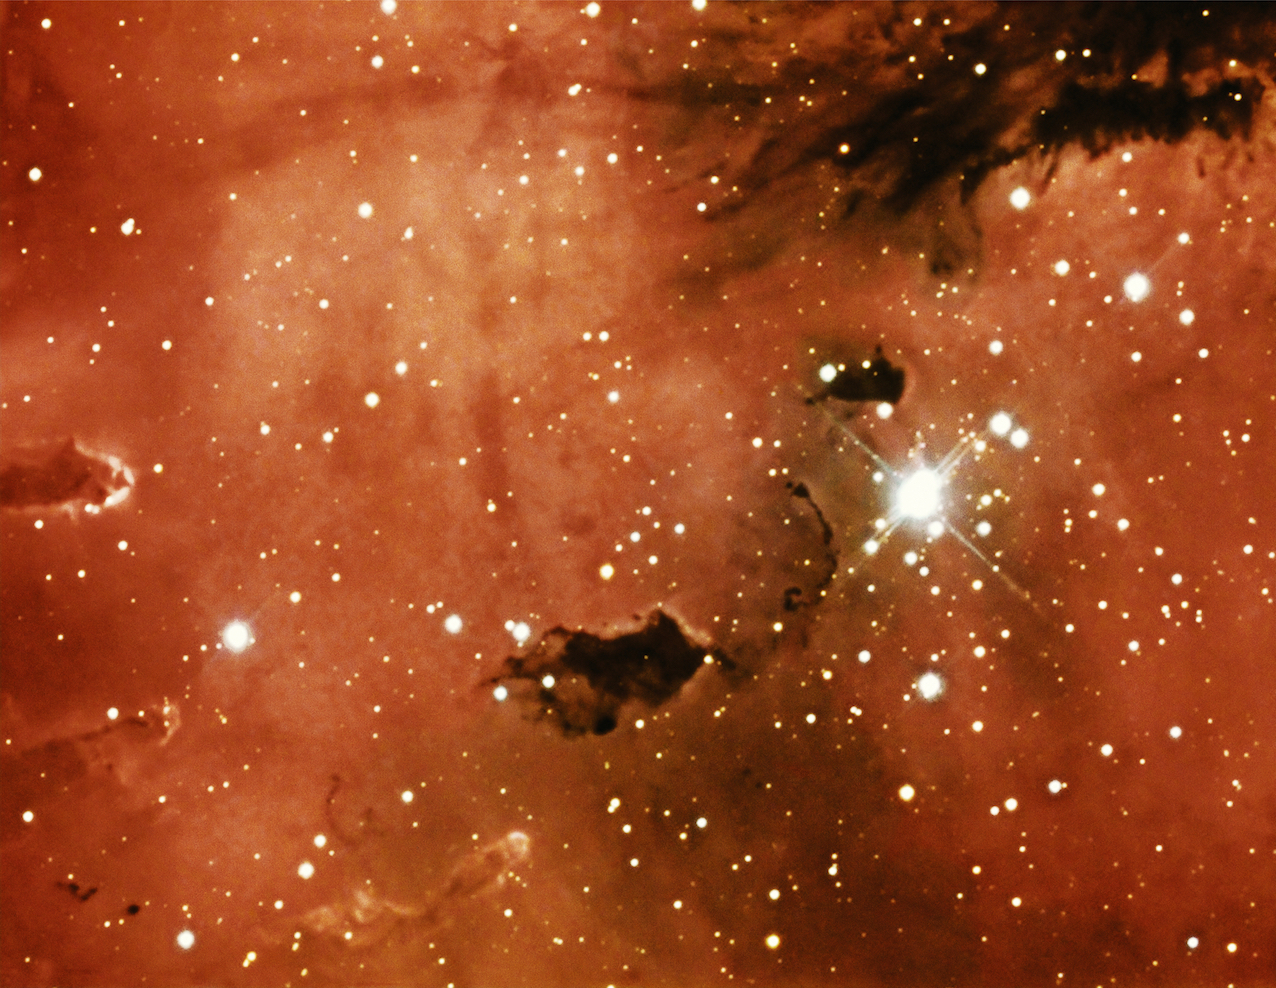 Taryn Simon, An American Index of the Hidden and Unfamiliar, 2007. Courtesy: Taryn Simon. NGC 281, The Pacman Nebula. Kitt Peak National Observatory Tohono O'odham Reservation, Arizona.